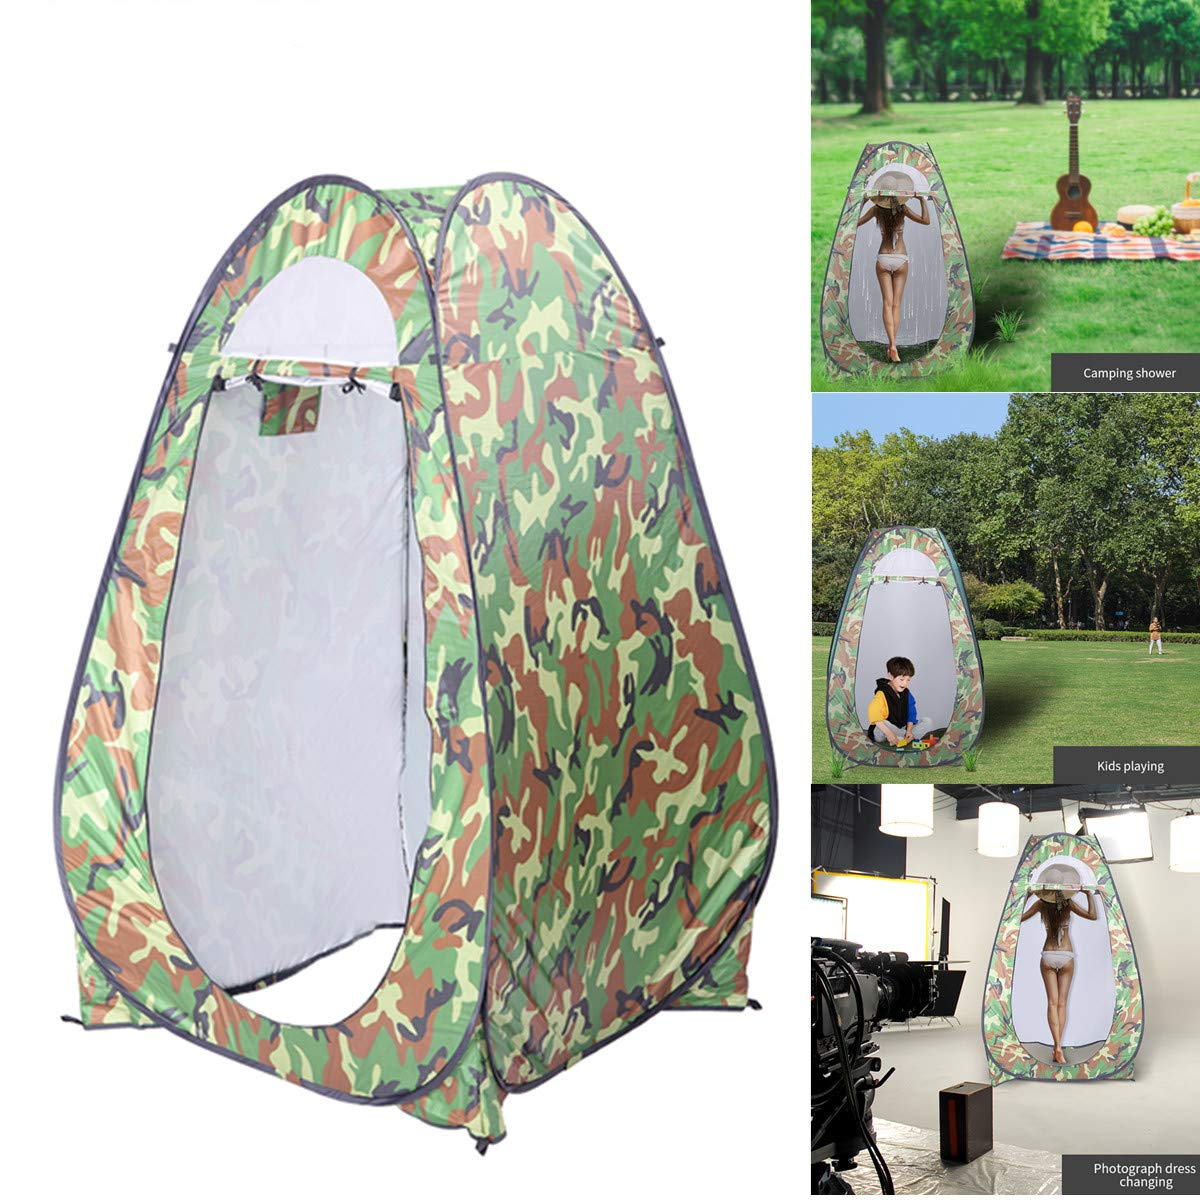 Pop-Up Camping Shower Tent, Dressing Fitting Room Privacy Shelter Tents for Outdoor Camping Toilet and Indoor Photo Shoot with Carrying Bag Waterproof Portable by Henf